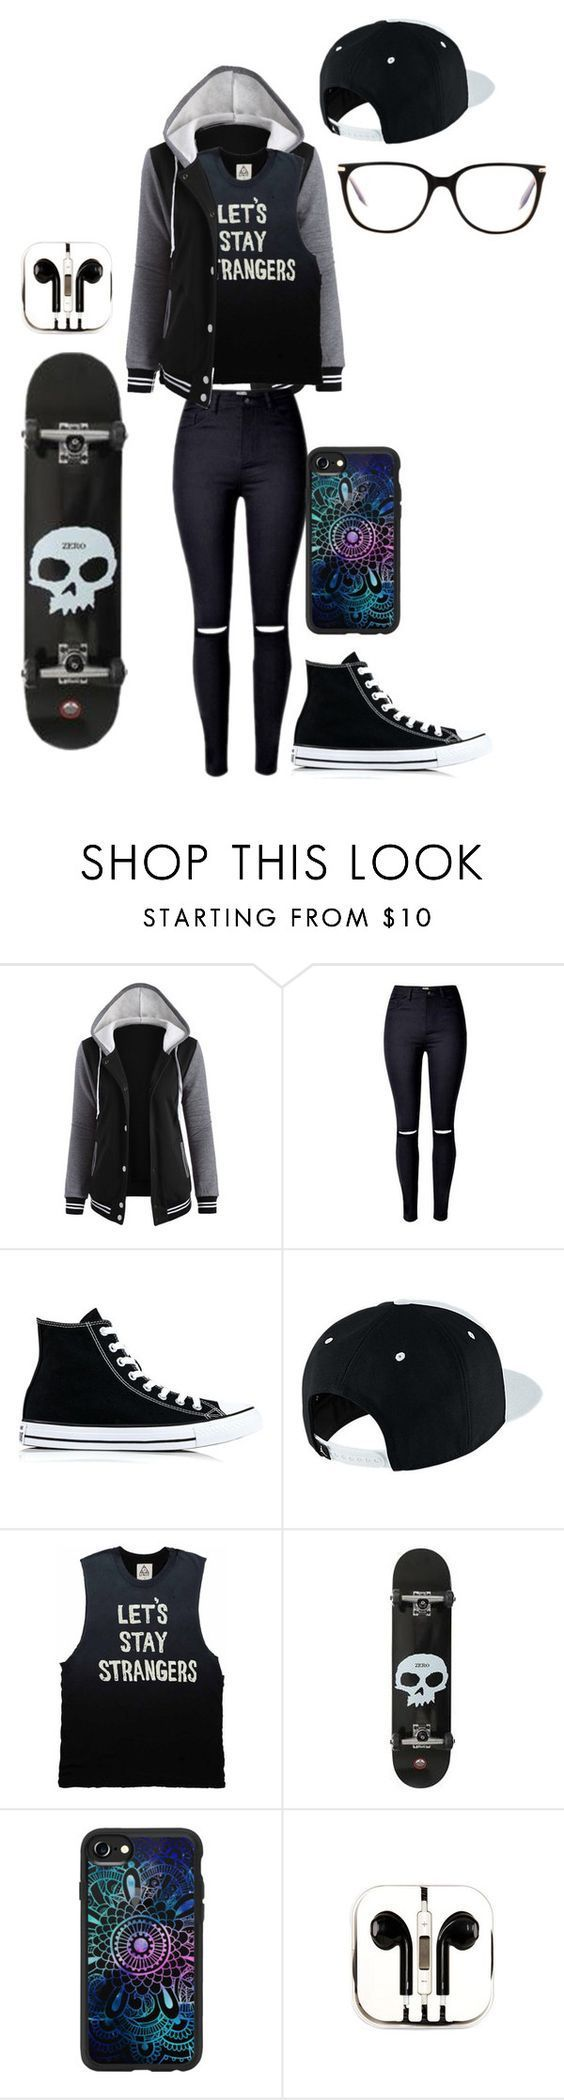 390 best Mode images on Pinterest | Woman clothing, Casual wear and ...